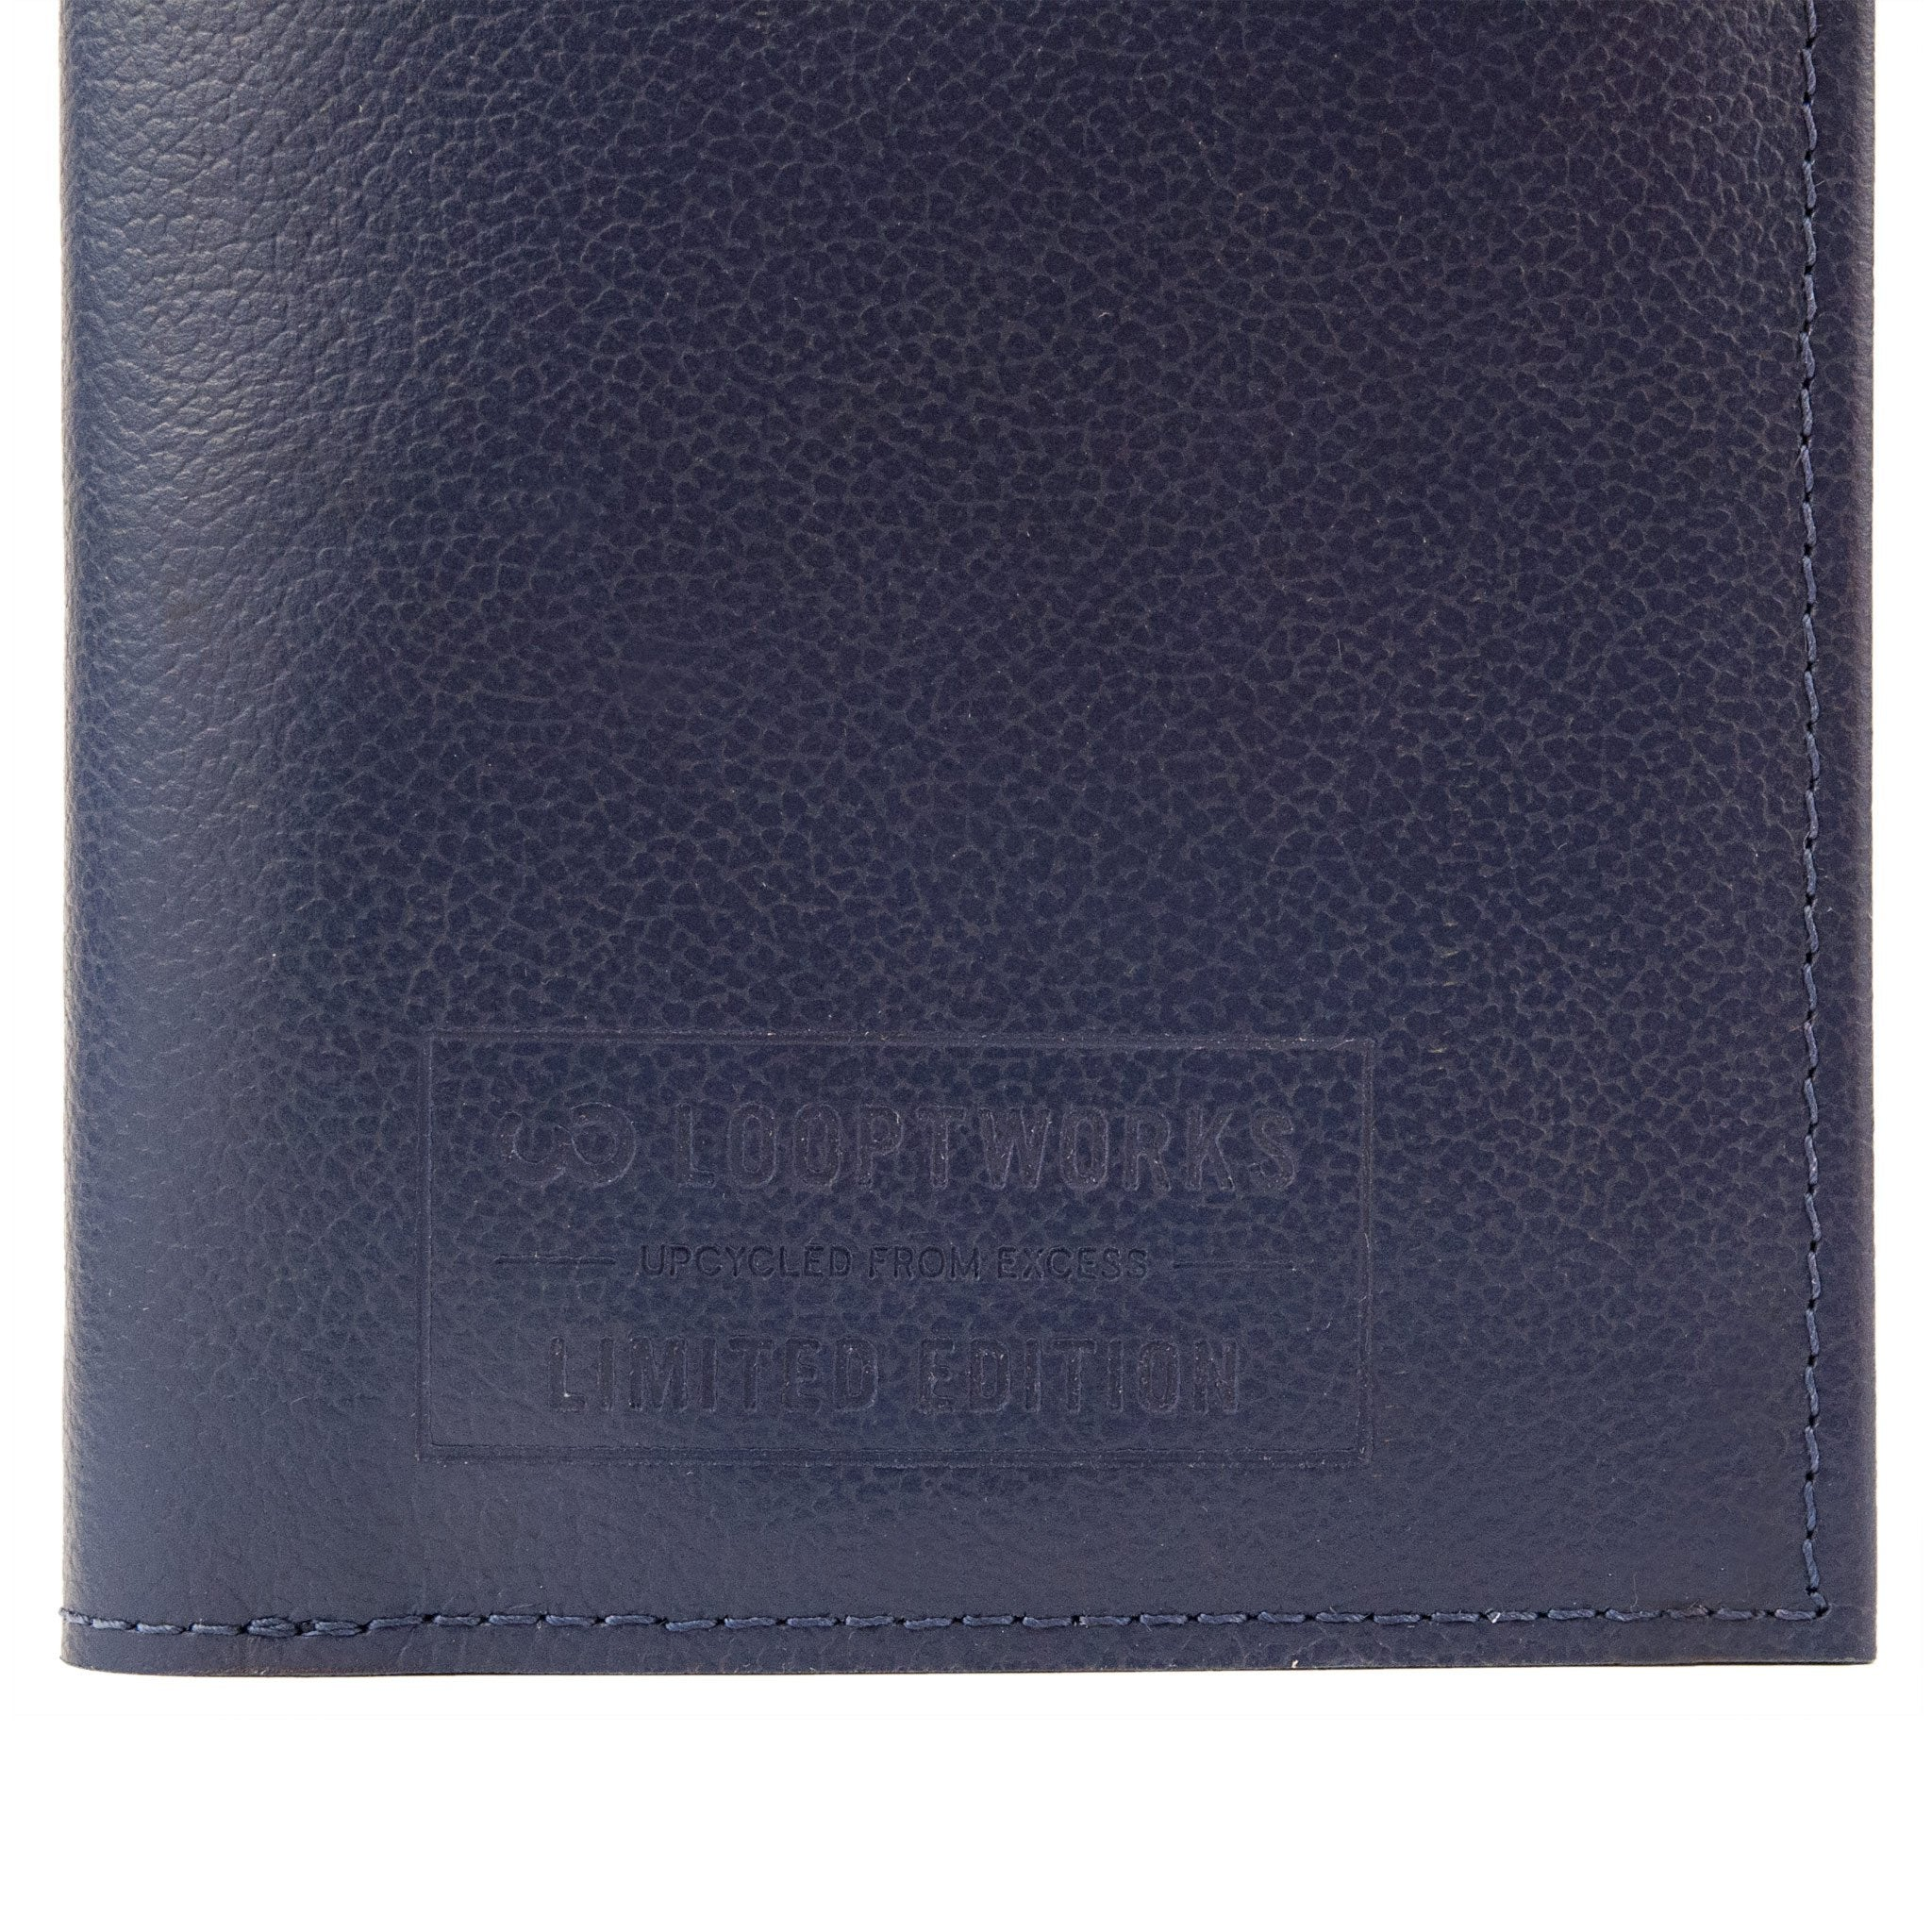 detail view of a blue and tan Passport Wallet made from leather upcycled from Southwest Airlines seat covers